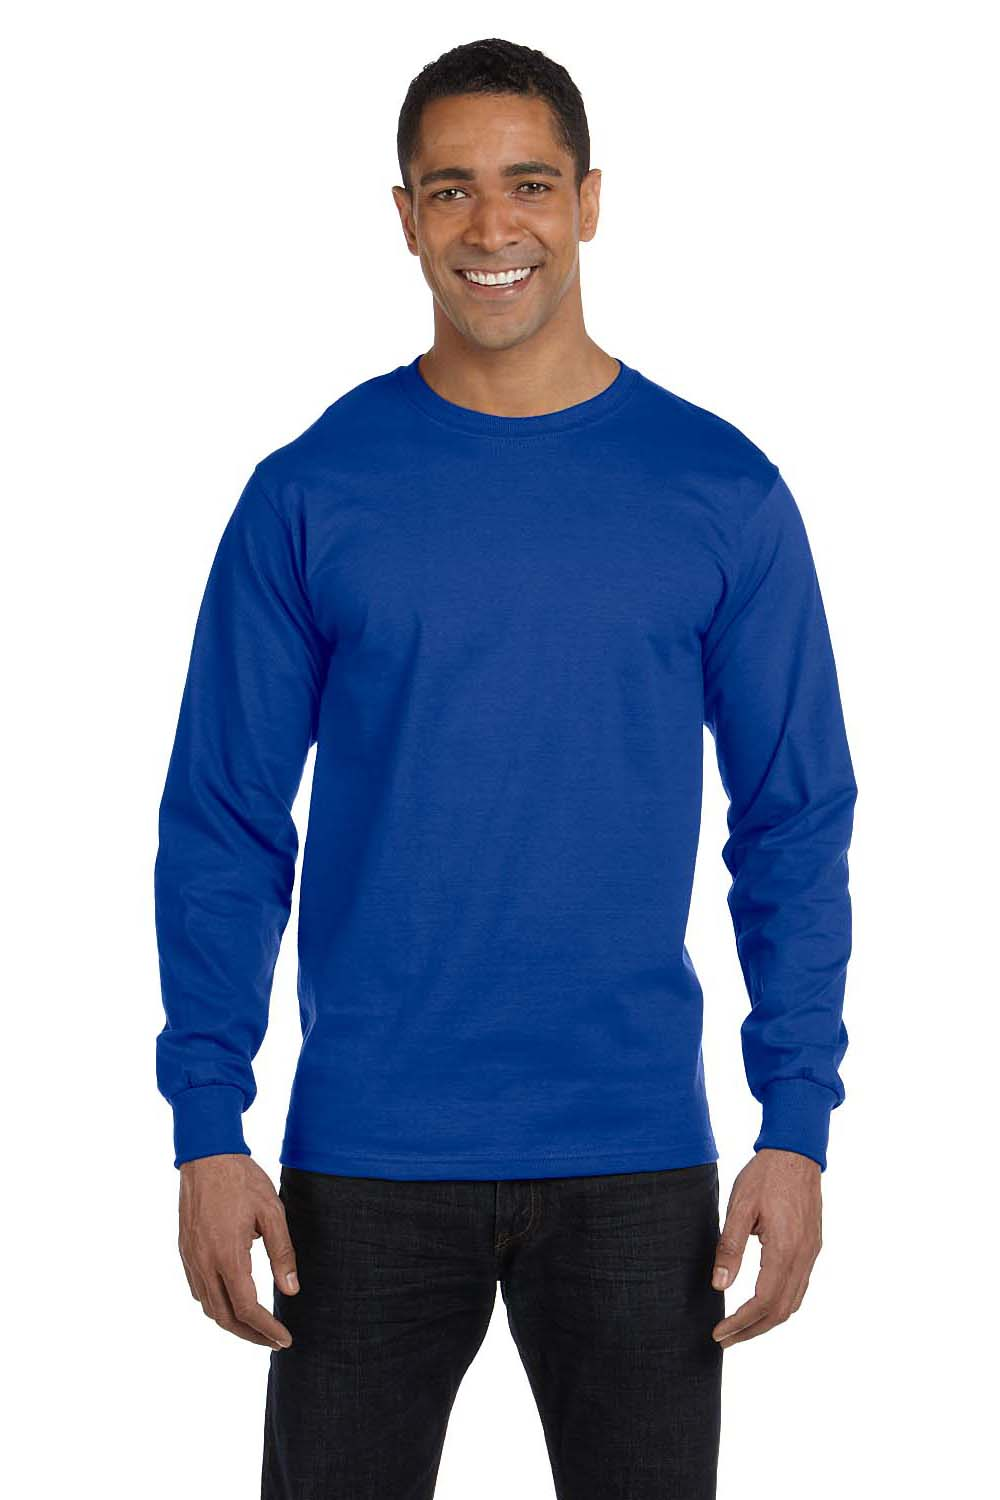 Hanes 5286 Mens ComfortSoft Long Sleeve Crewneck T-Shirt Royal Blue Front